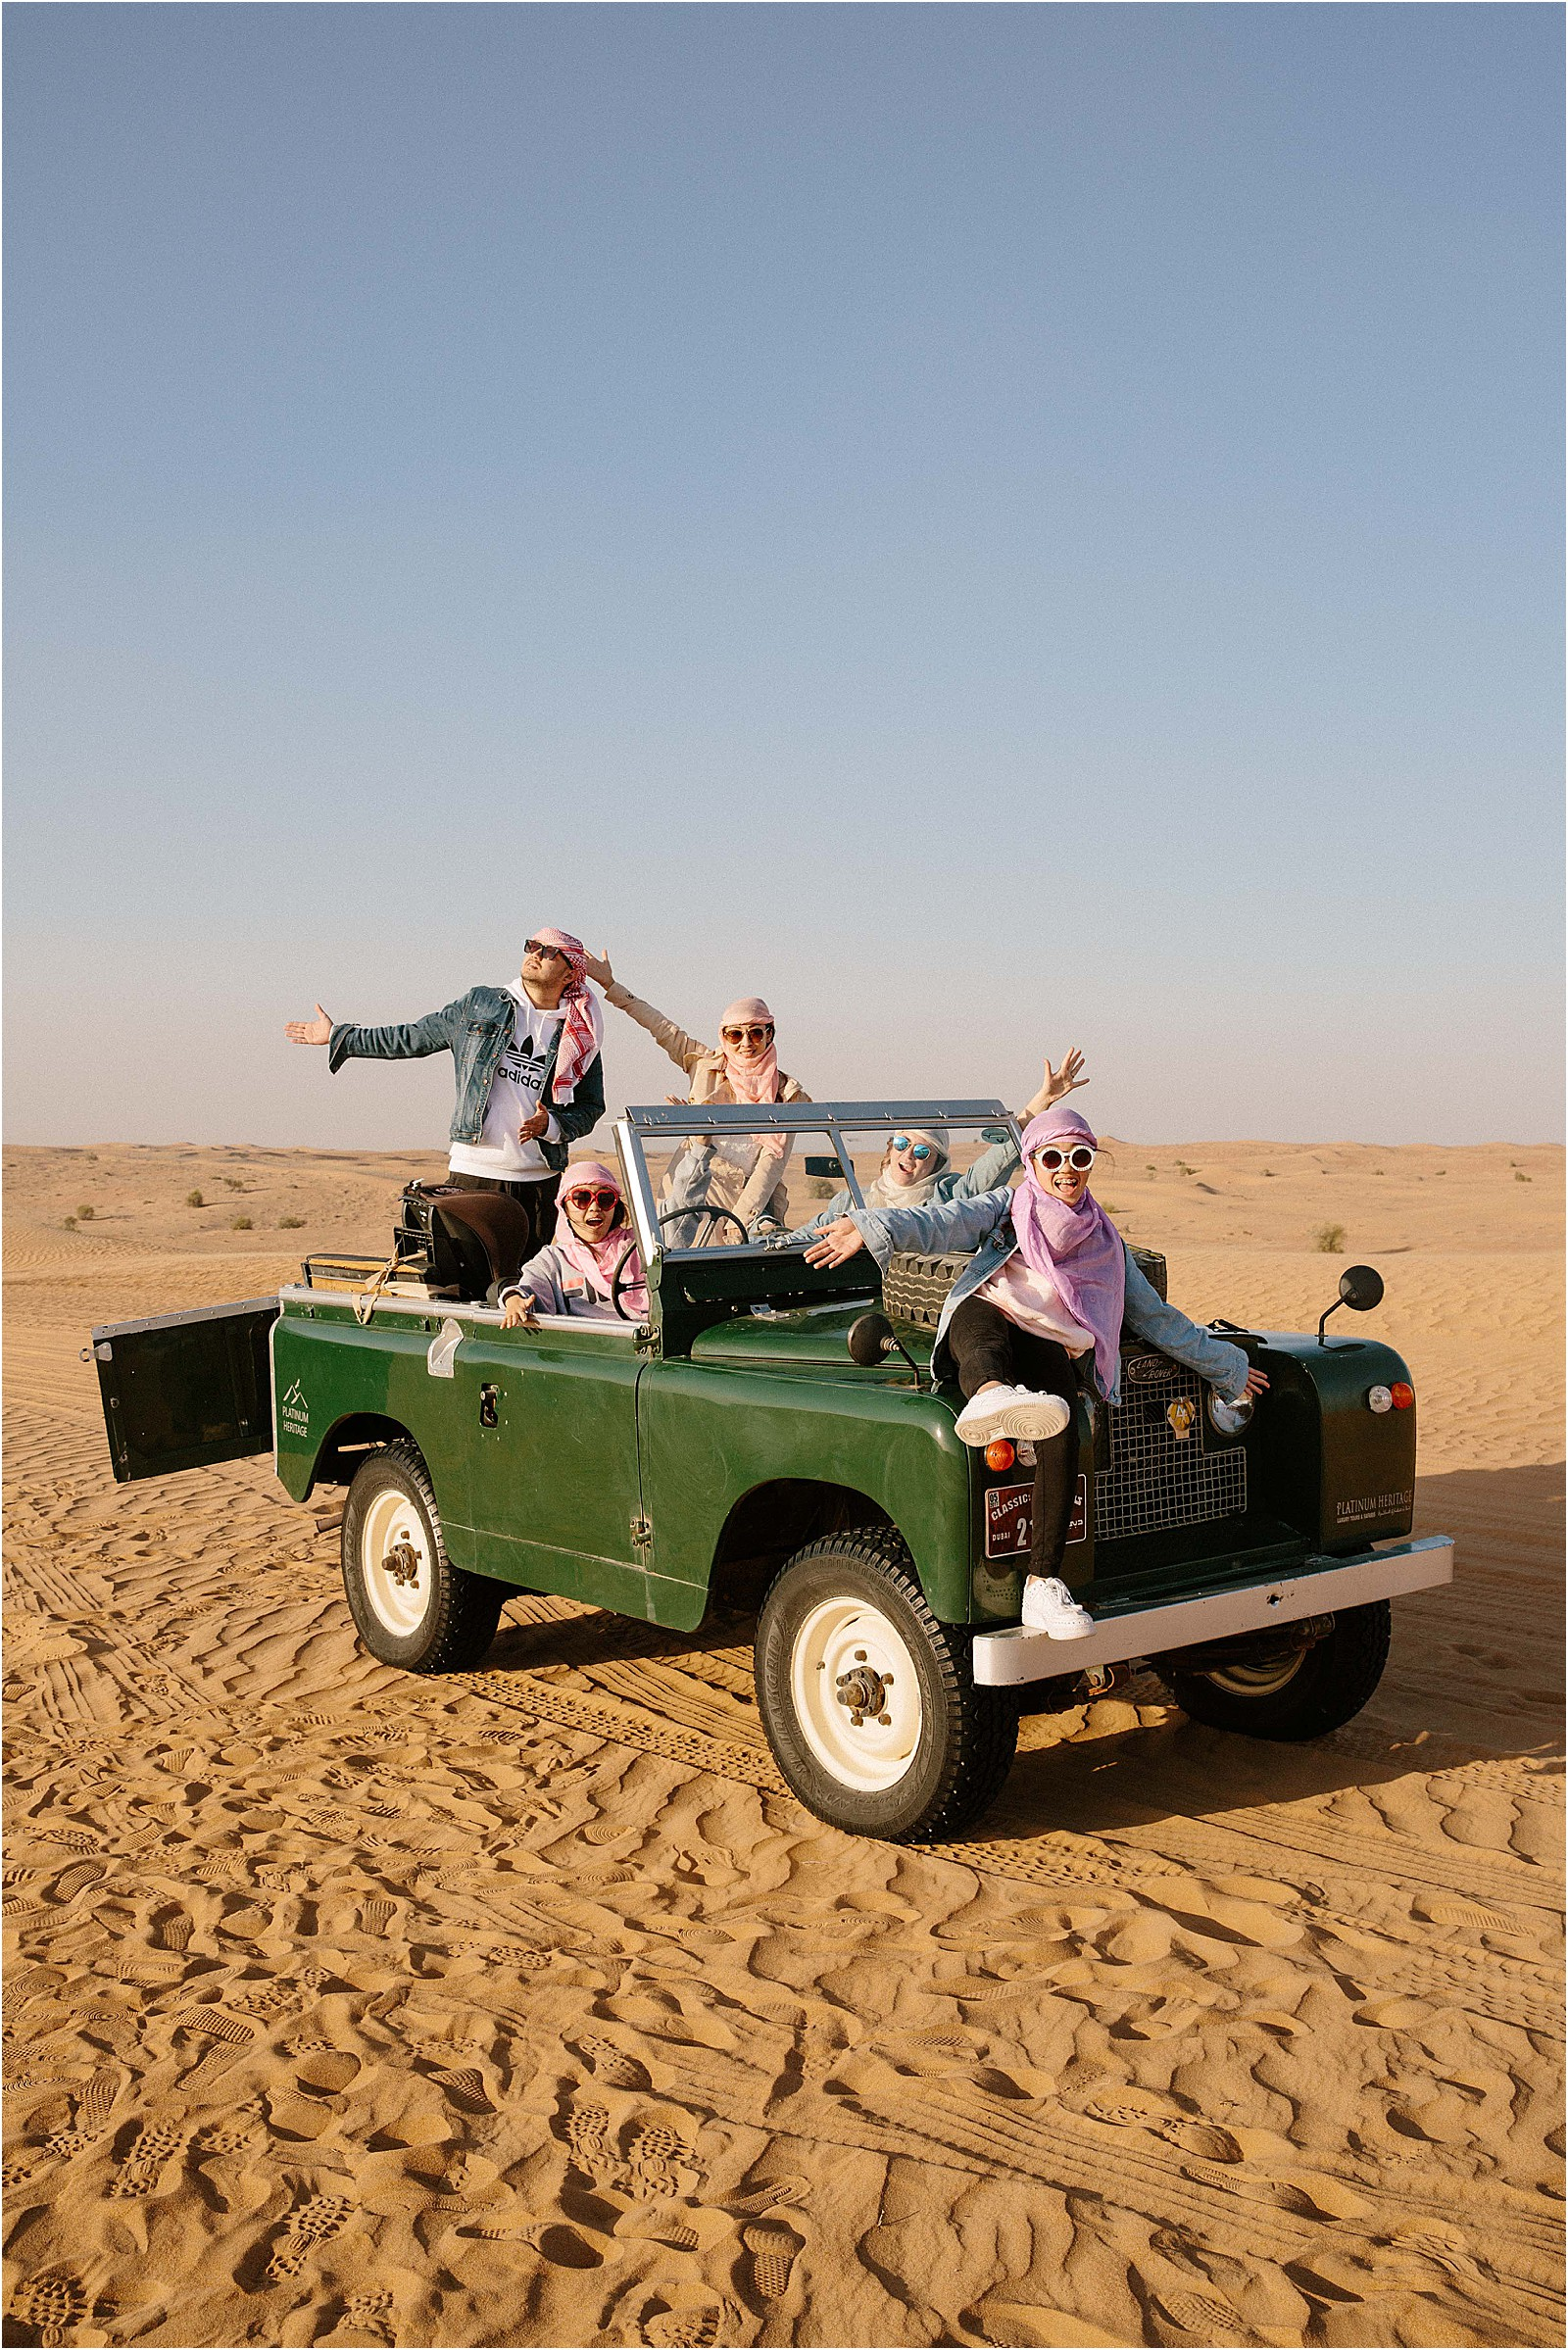 10 Reasons Why You Should Visit Dubai For Your Next Family Vacation